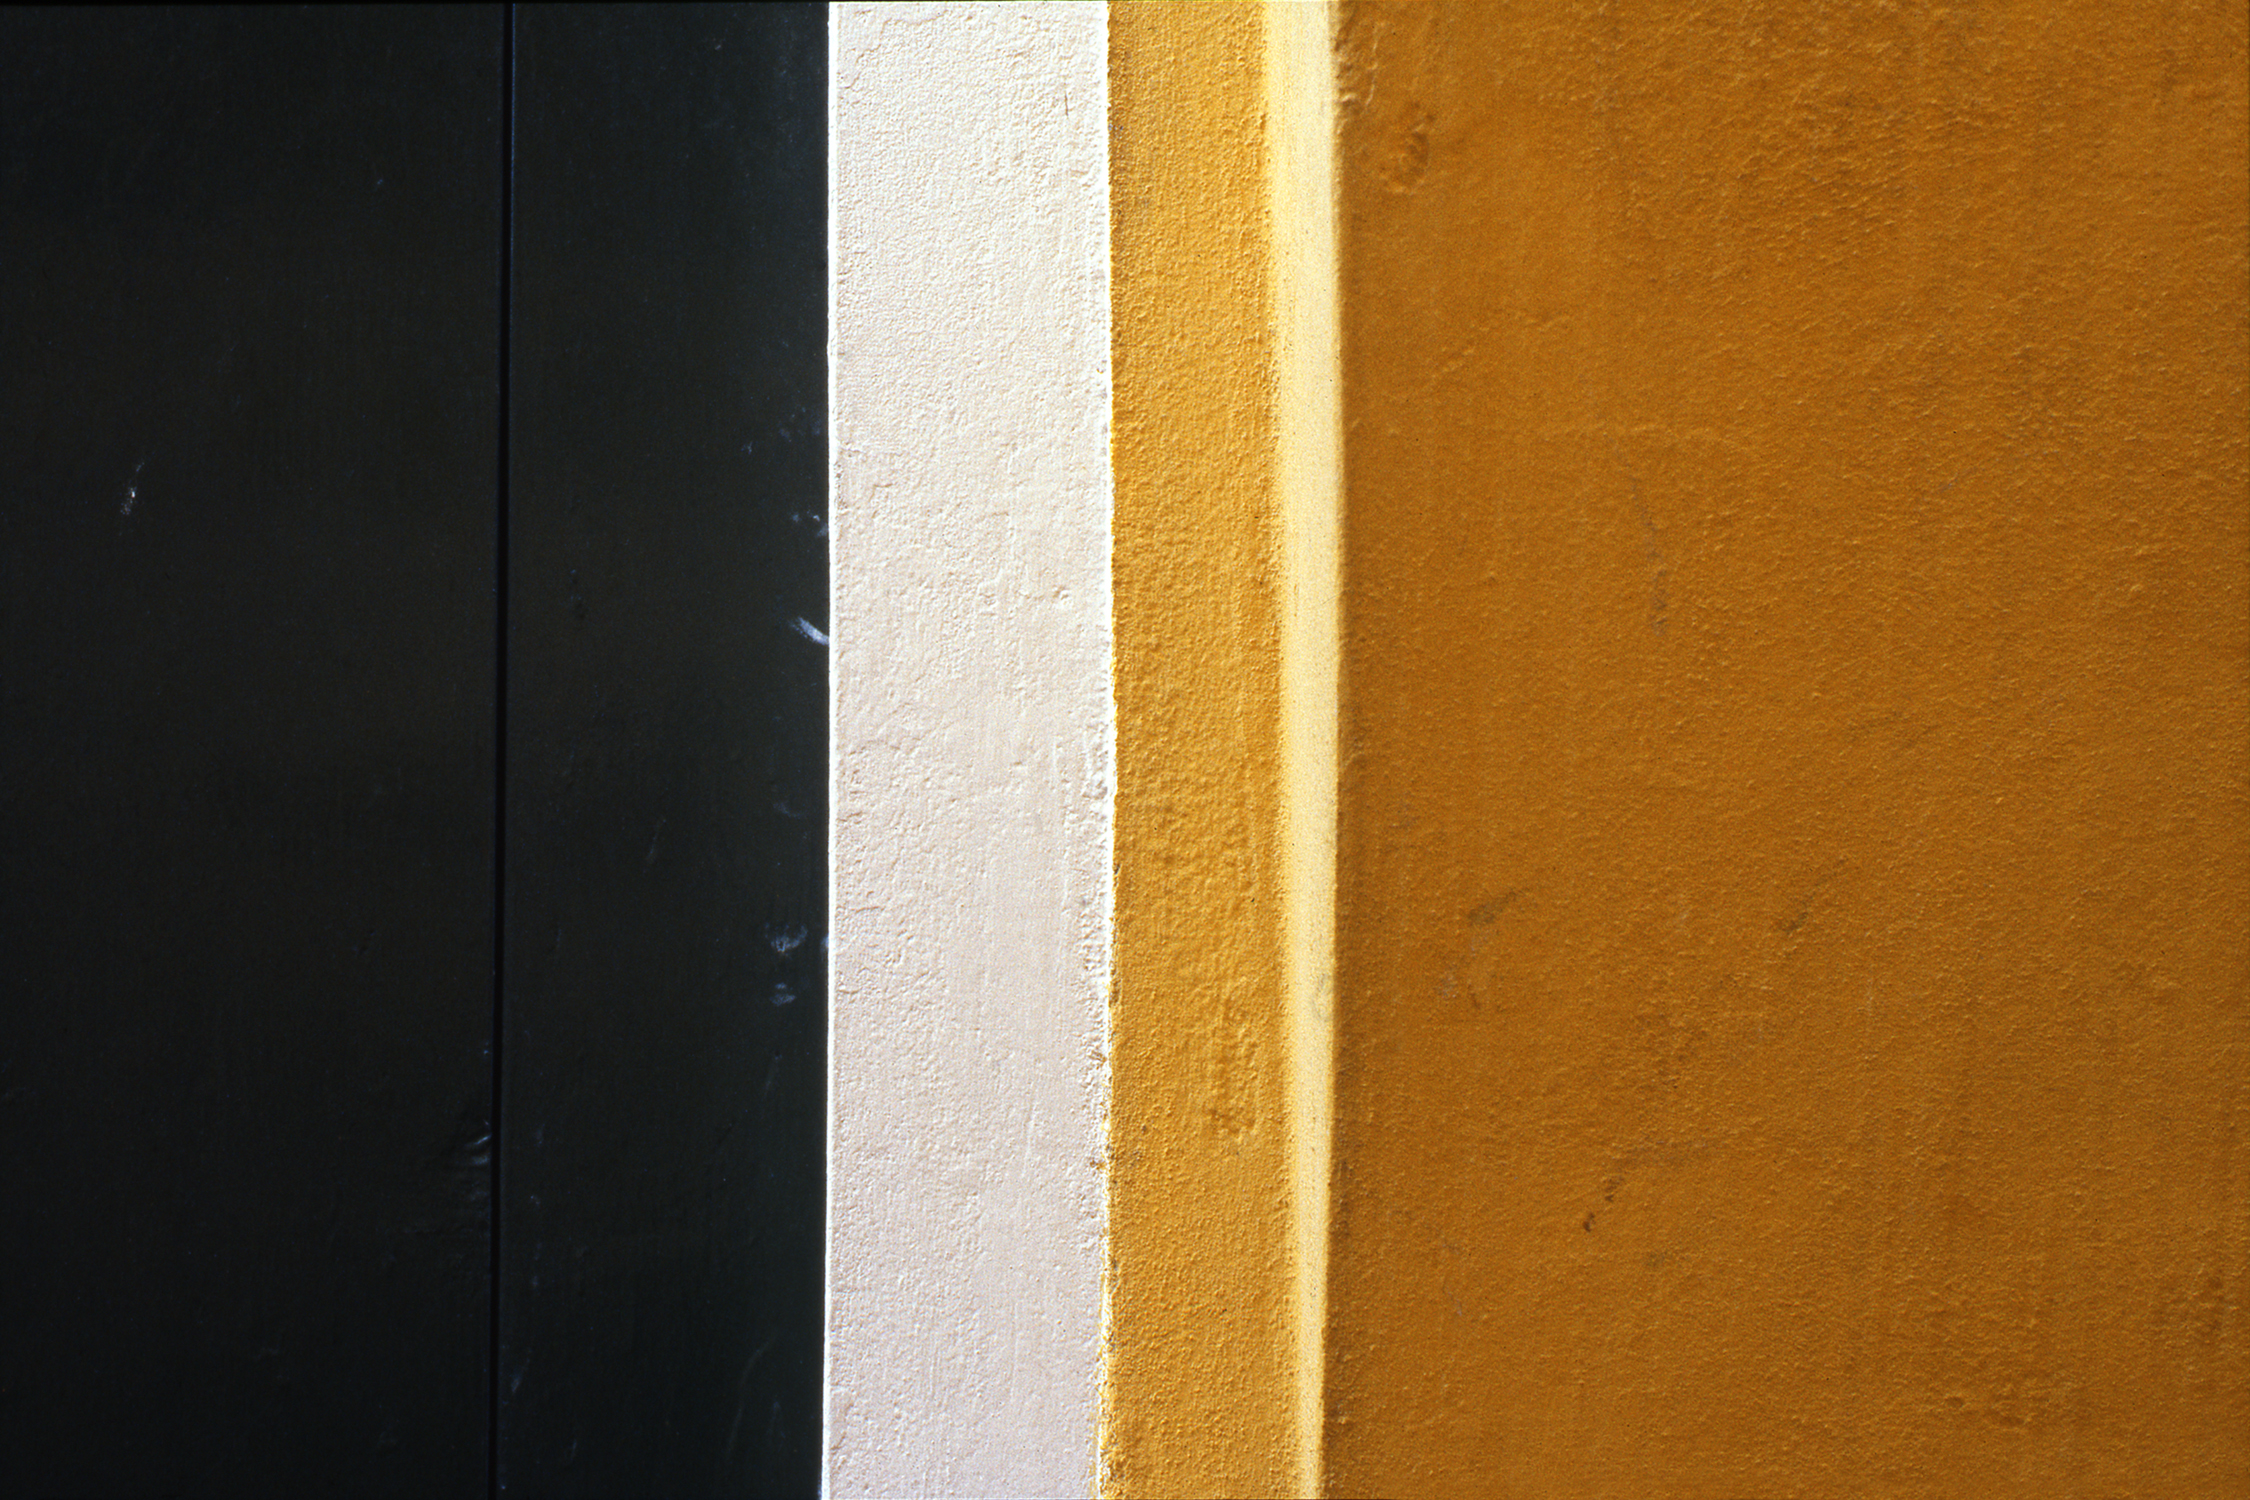 Yellow Wall and Green Shutter, Burano Italy, 1978 ,Cibachrome Print, 16 x 24cm, Edition of 10.              Exhibition:  Burano Colour Works ,Australian Centre for Photography, Sydney; Solander Gallery, Canberra; Wagga Wagga City Art Gallery,Wagga Wagga, 1979.